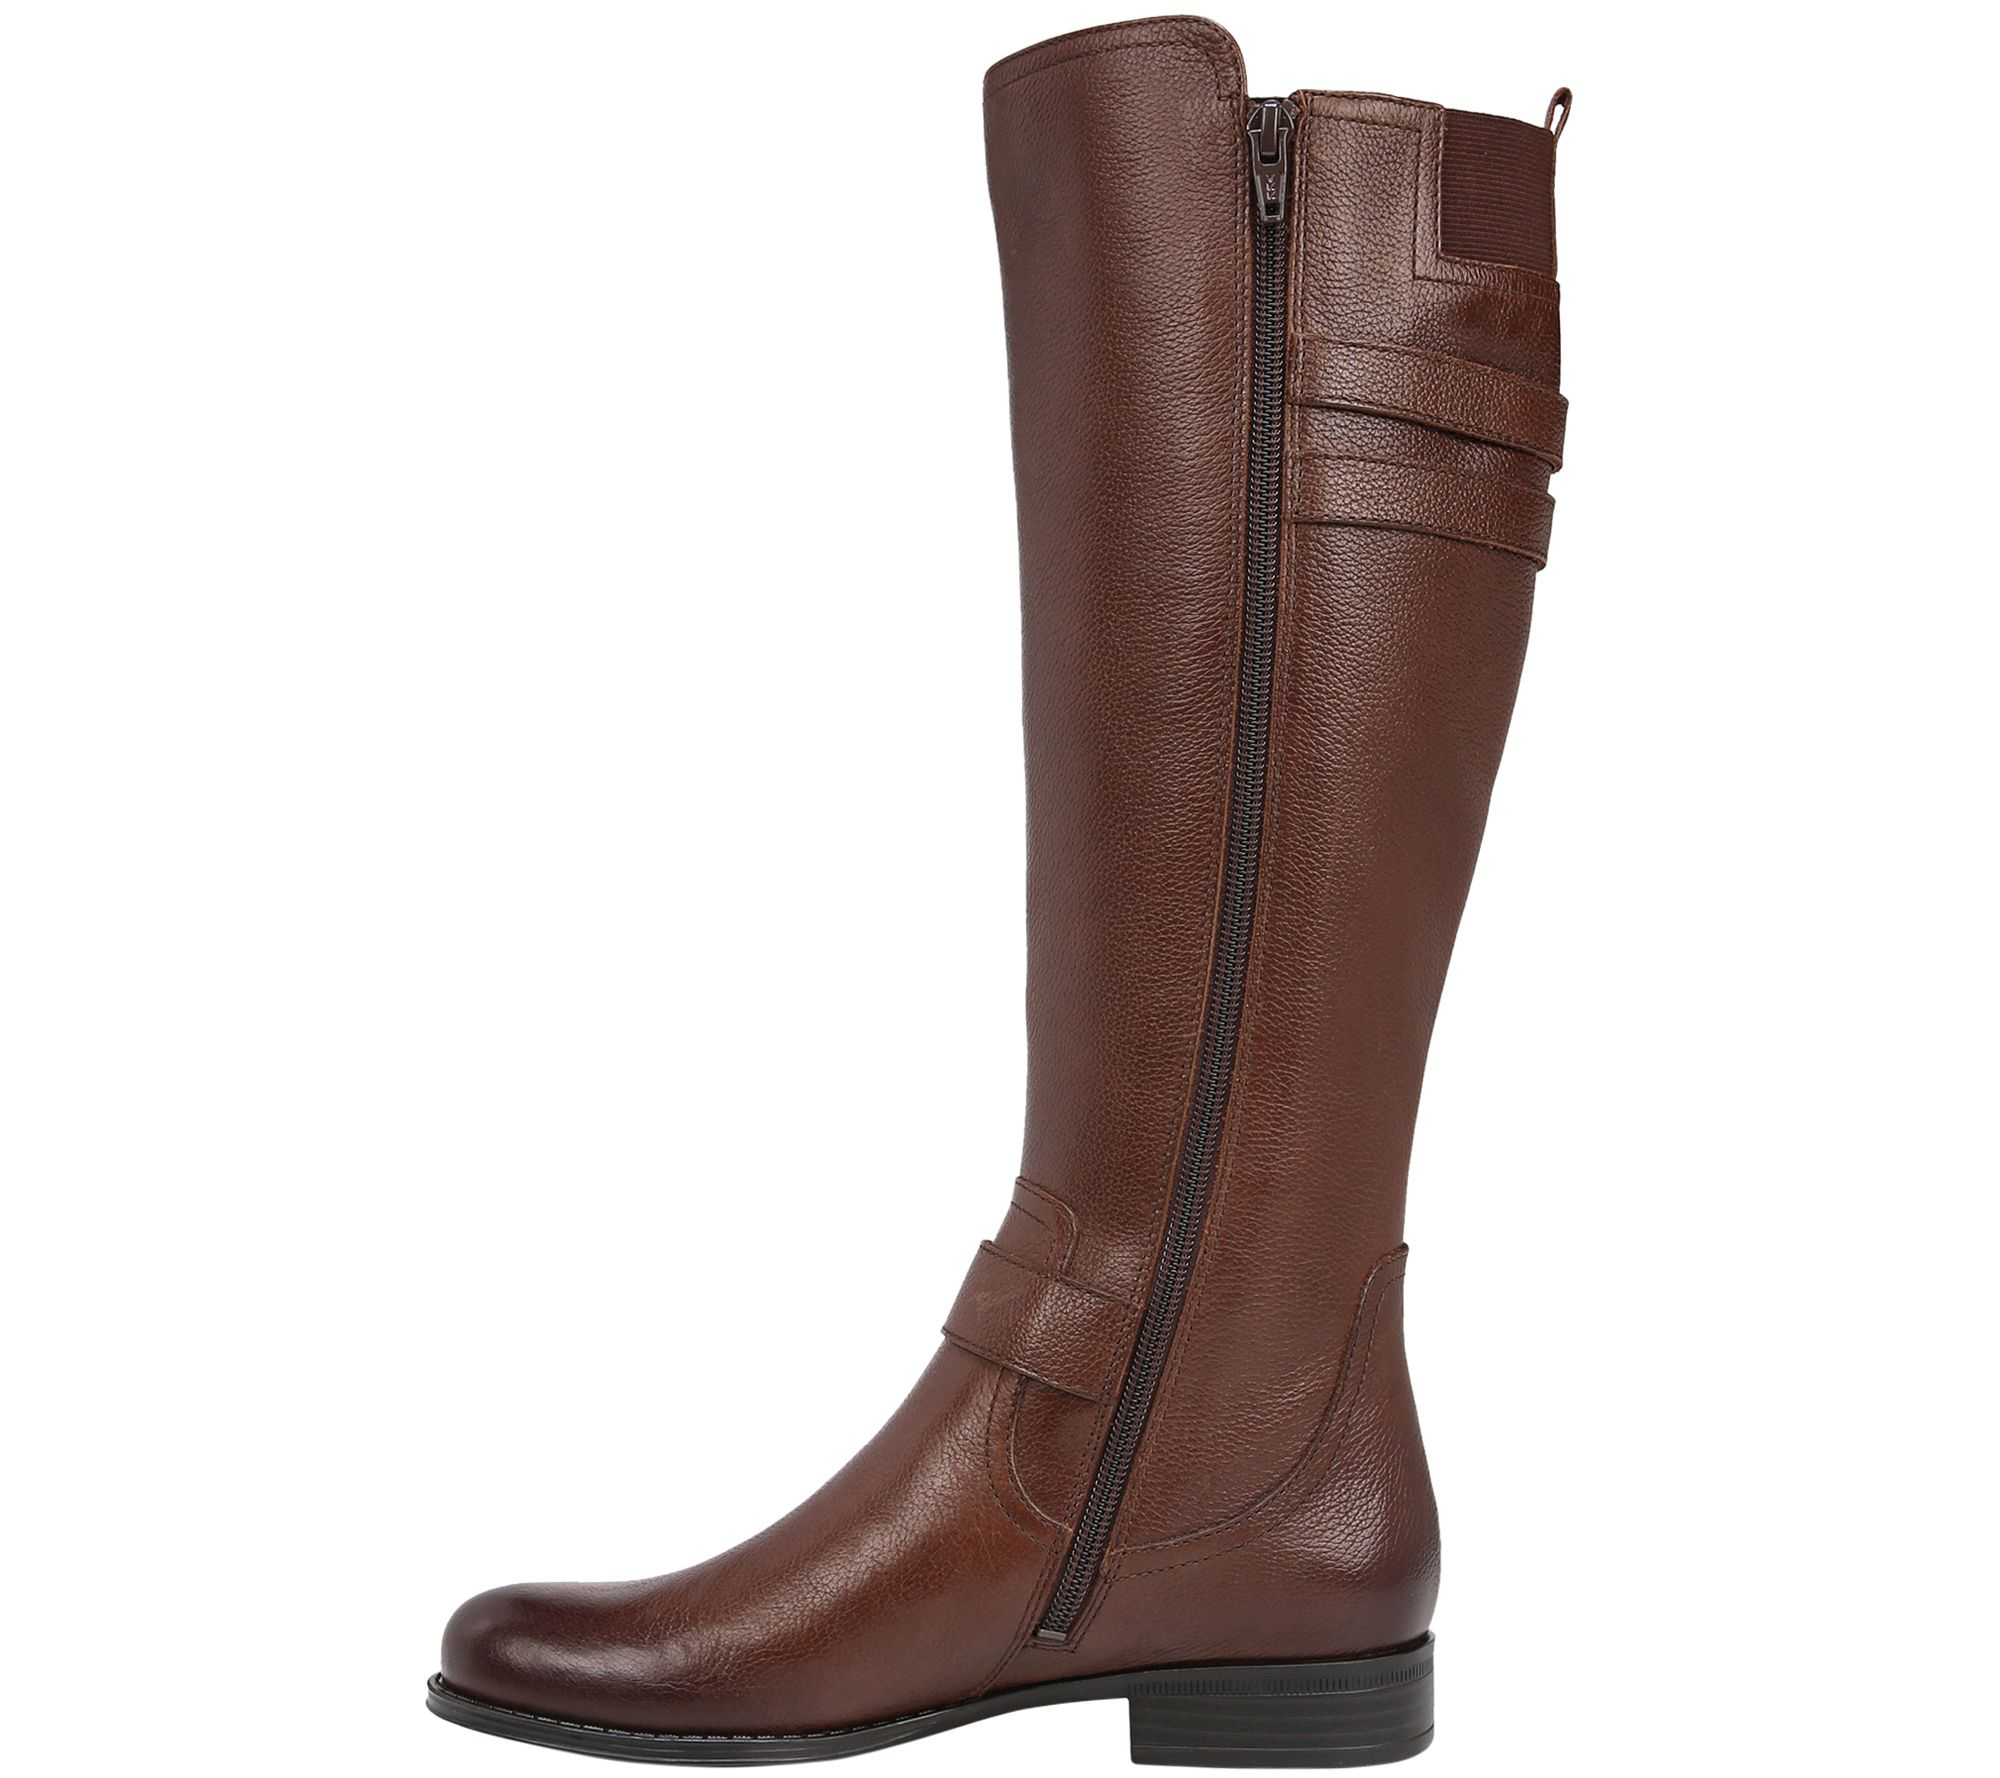 e24c992952f4 Naturalizer Low Heel Leather Riding Boots - Jessie Wide - Page 1 — QVC.com